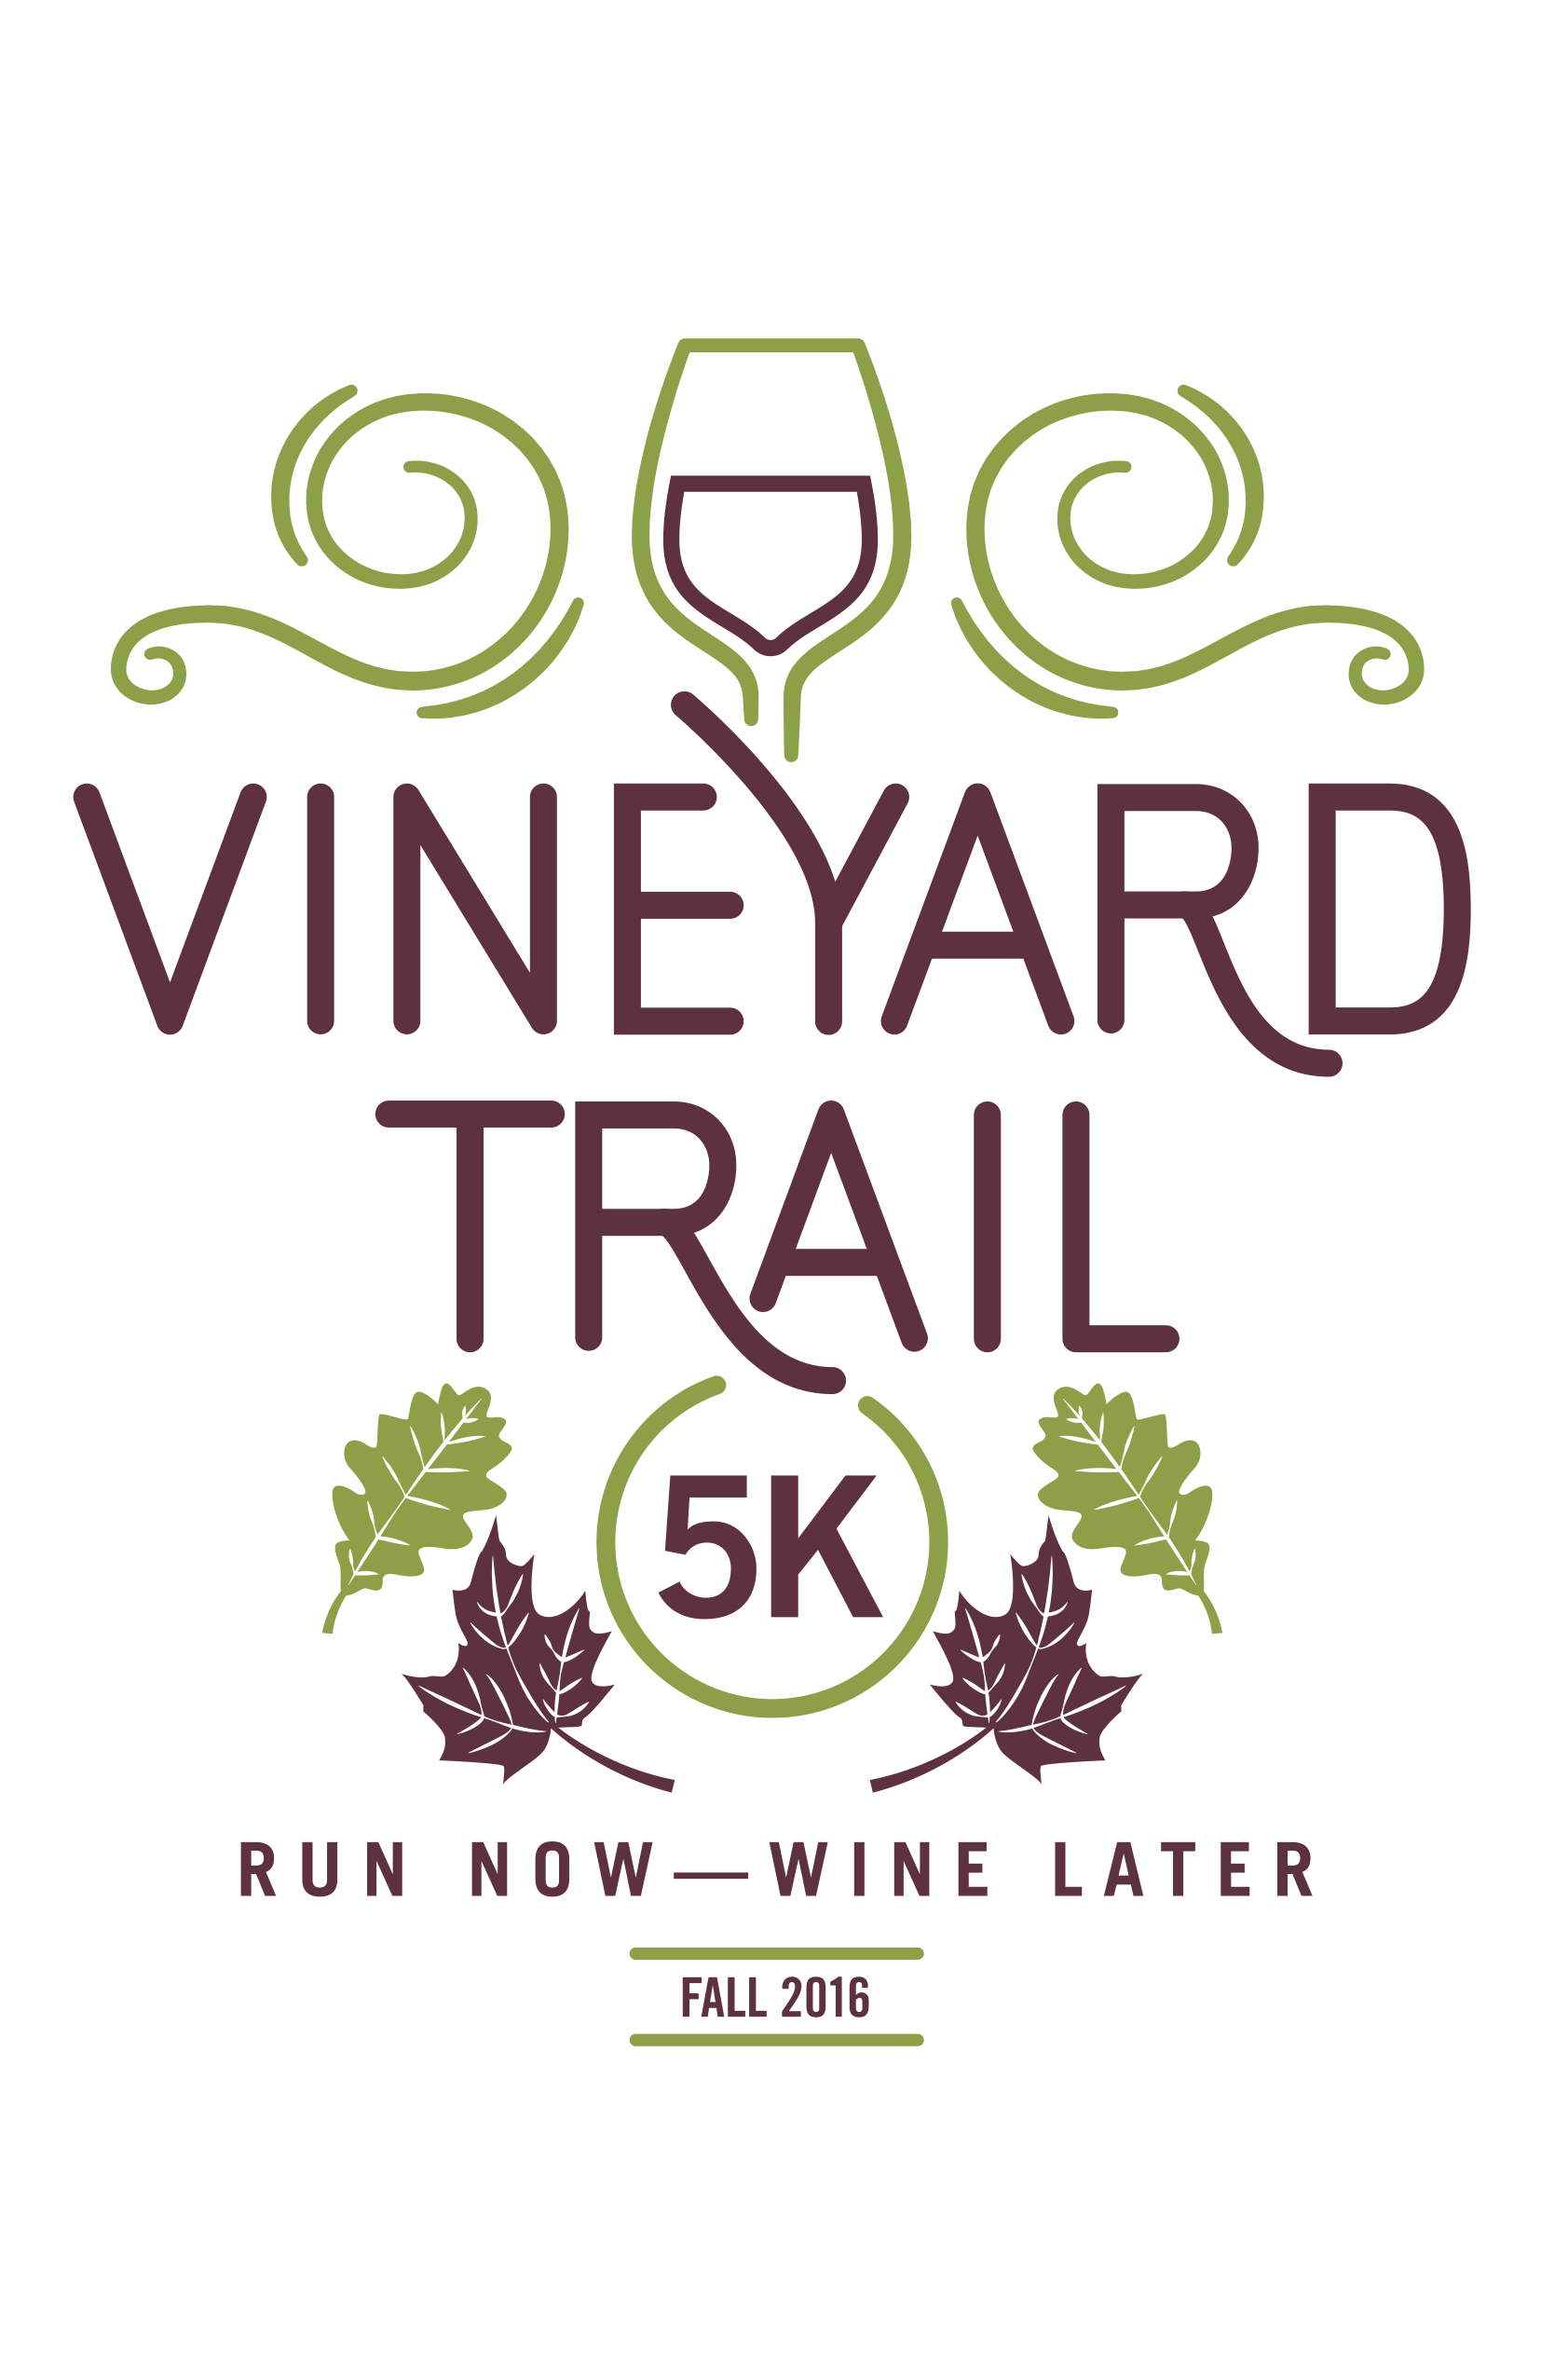 Vineyard Trail 5K Logo